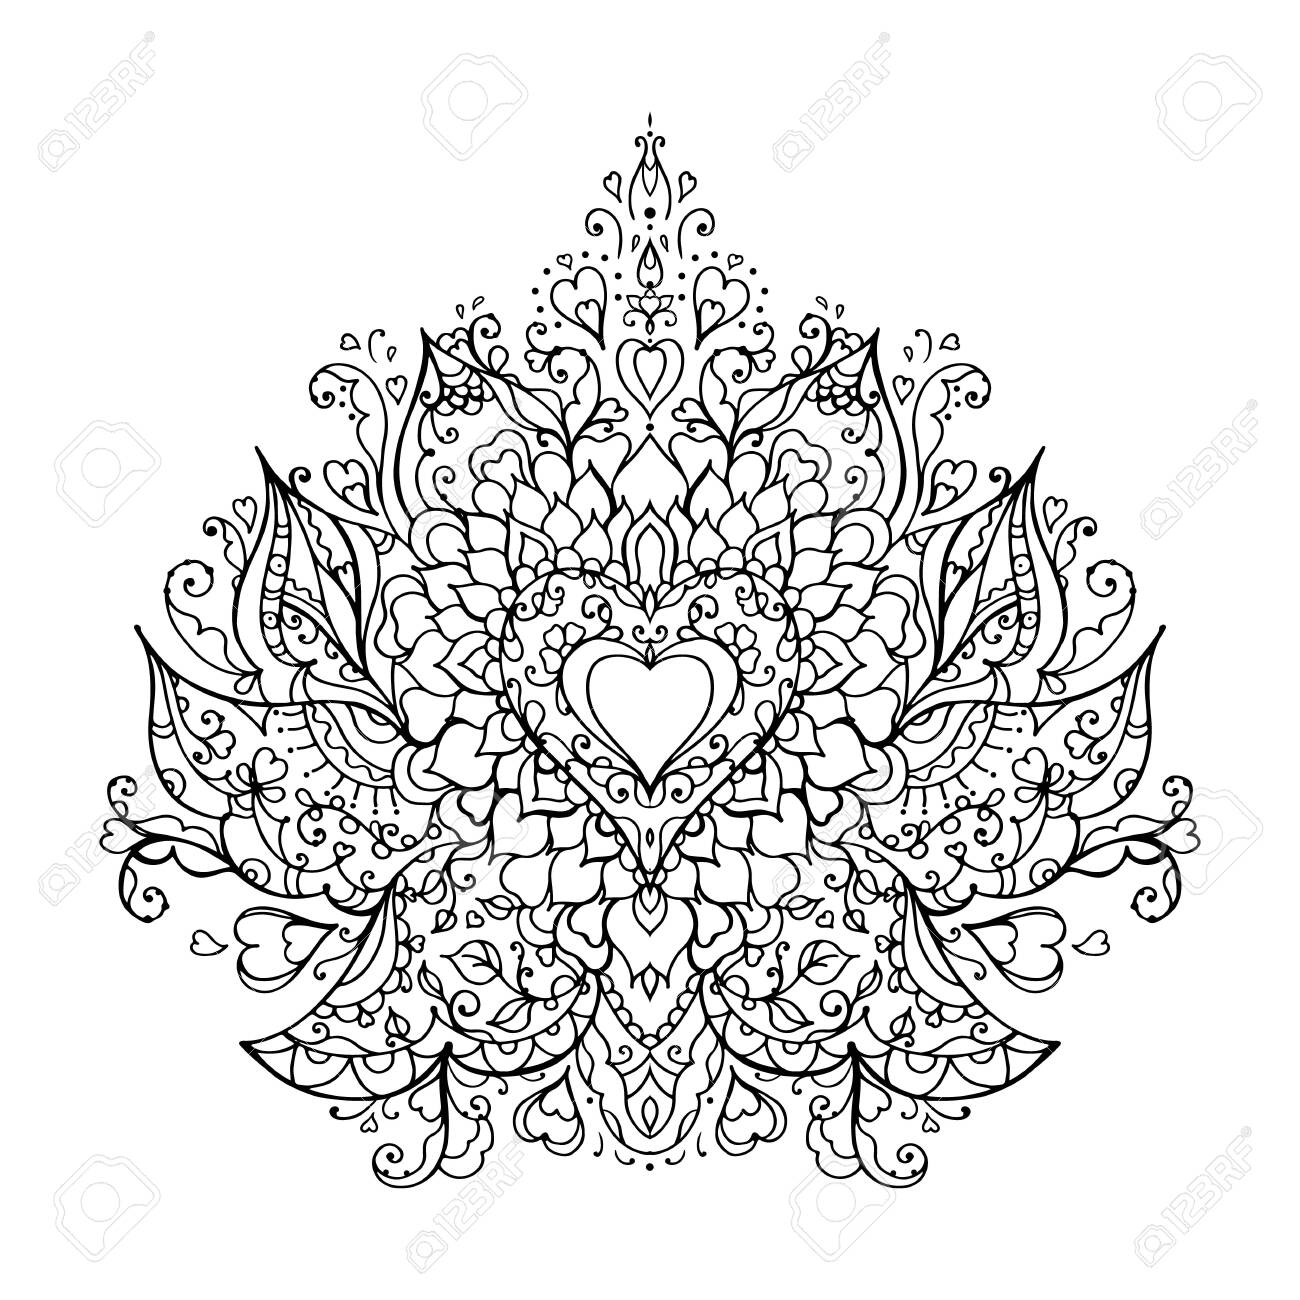 Mandala Art For Meditation Color Therapy Adult Coloring Pages Royalty Free Cliparts Vectors And Stock Illustration Image 144705772